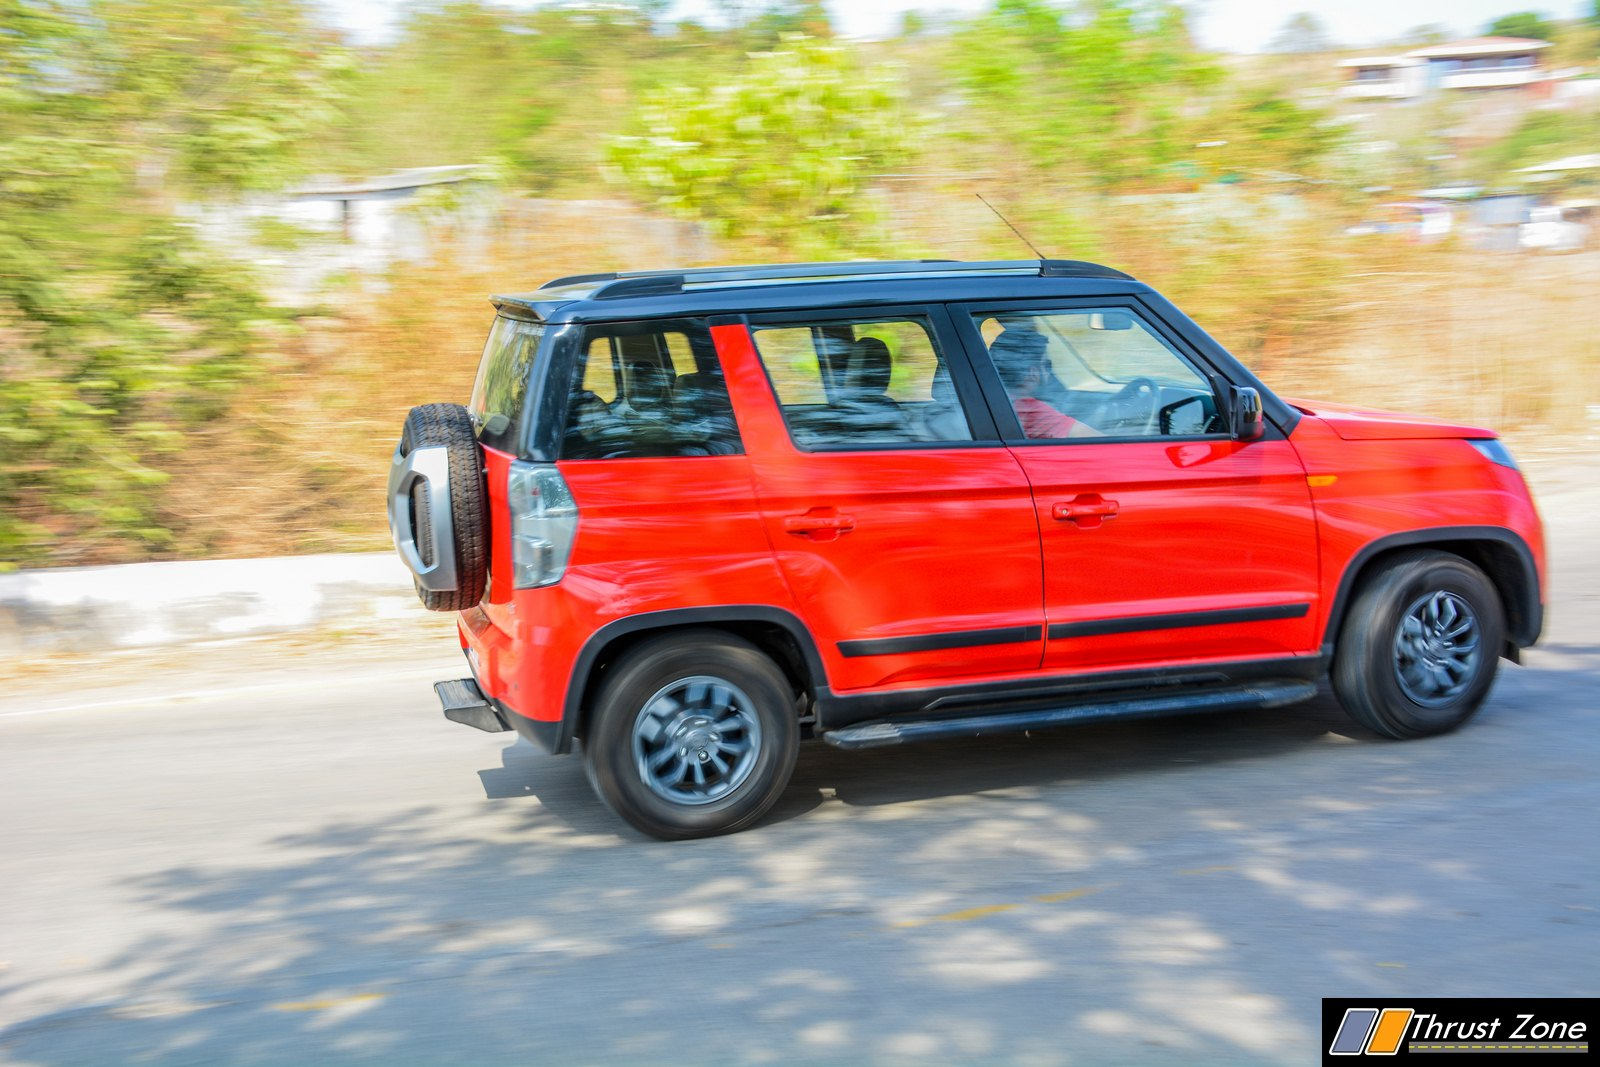 https://www.thrustzone.com/wp-content/uploads/2019/06/2019-mahindra-tuv-300-facelift-review-4-2.jpg